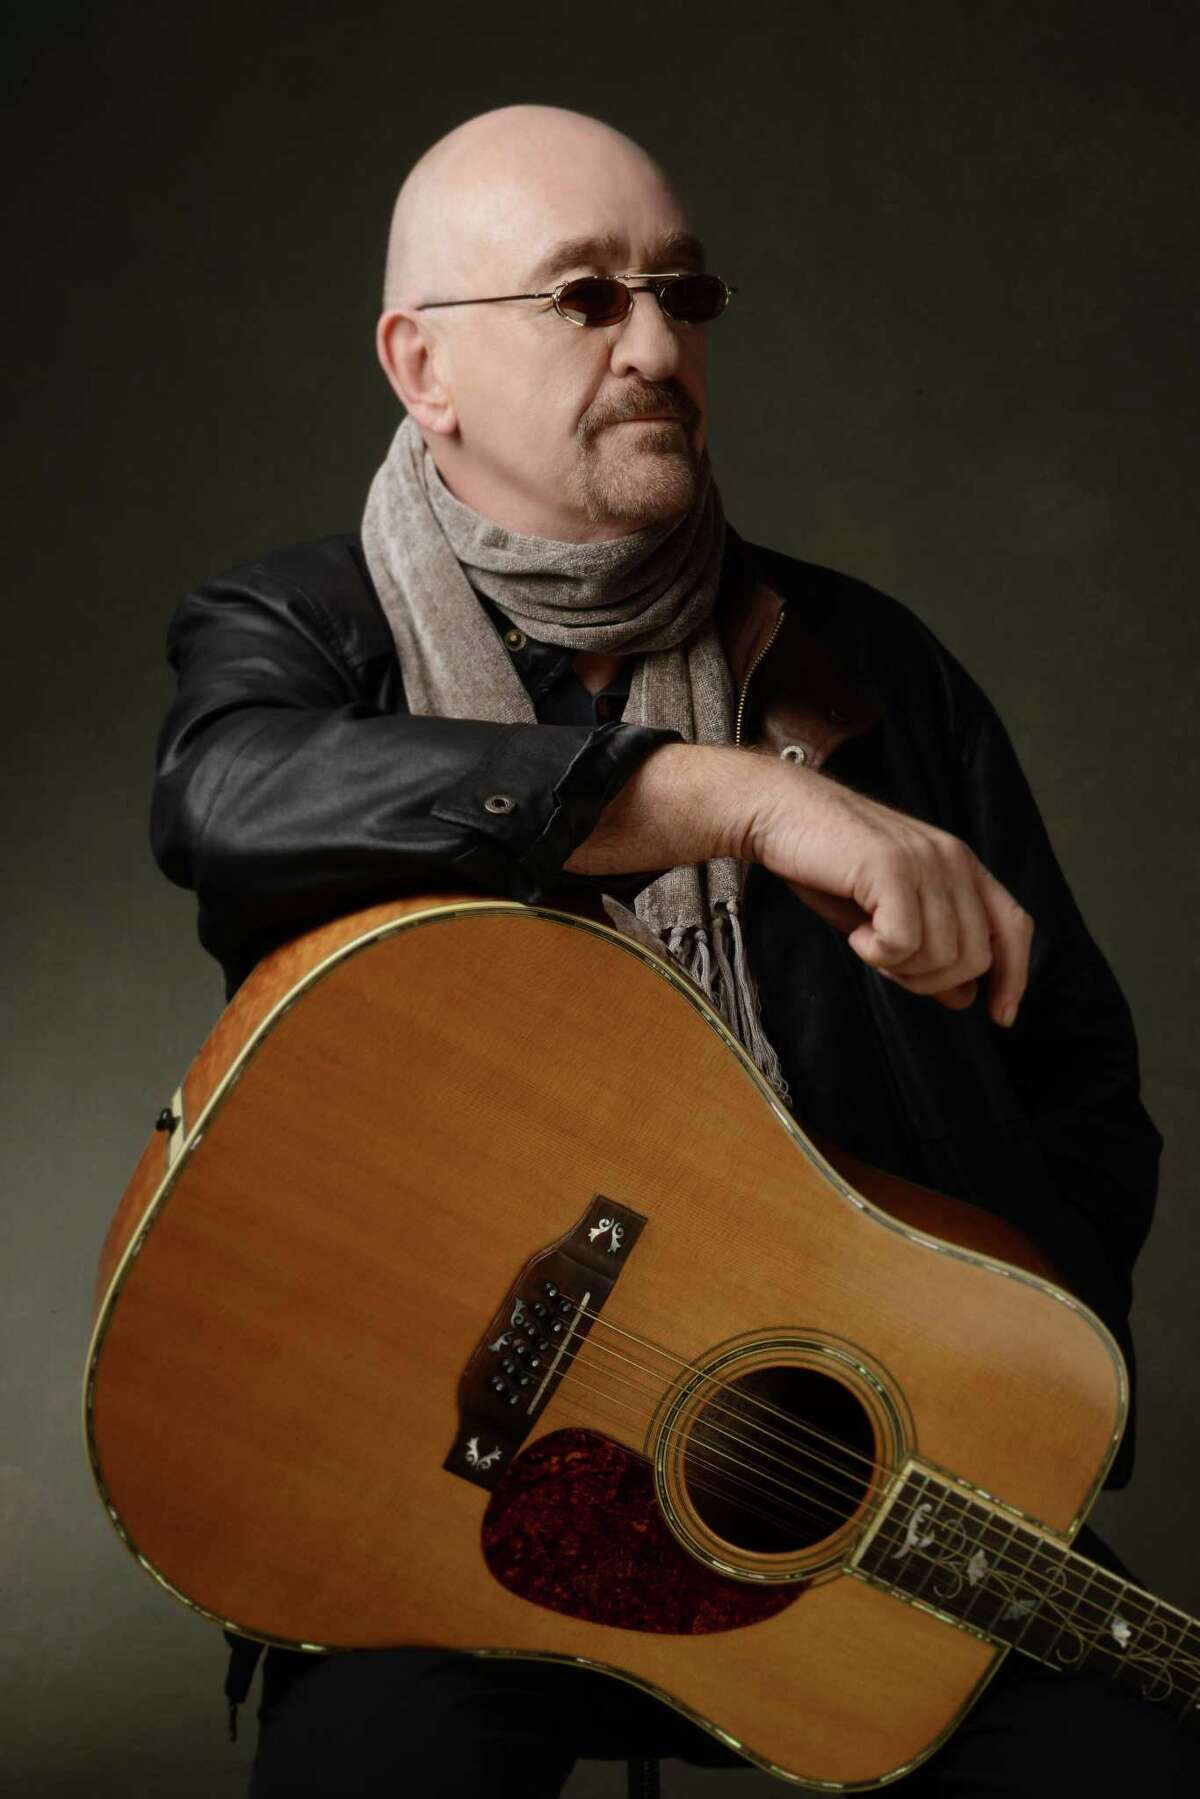 Dave Mason will perform at Ridgefield Playhouse on March 10.